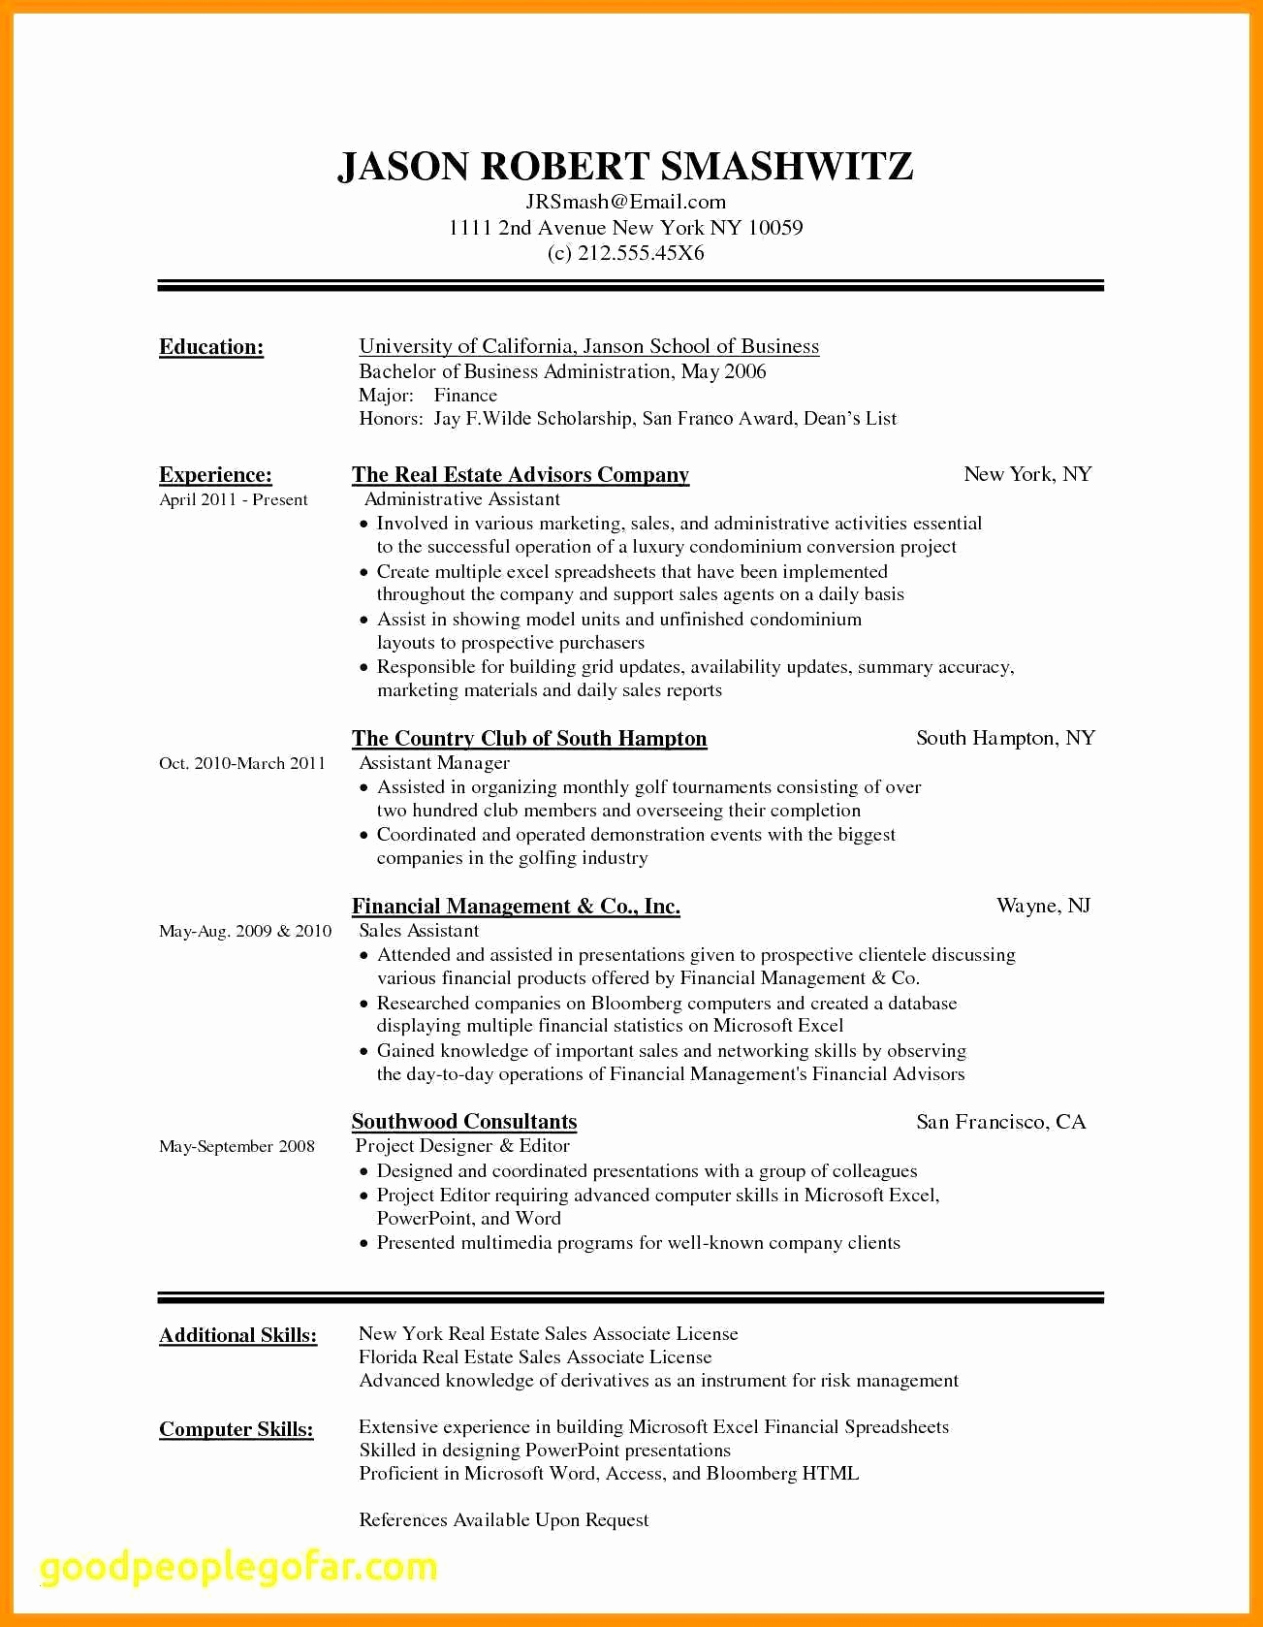 Resume Cover Letter Template Word Free - Acting Resume Templates for Microsoft Word